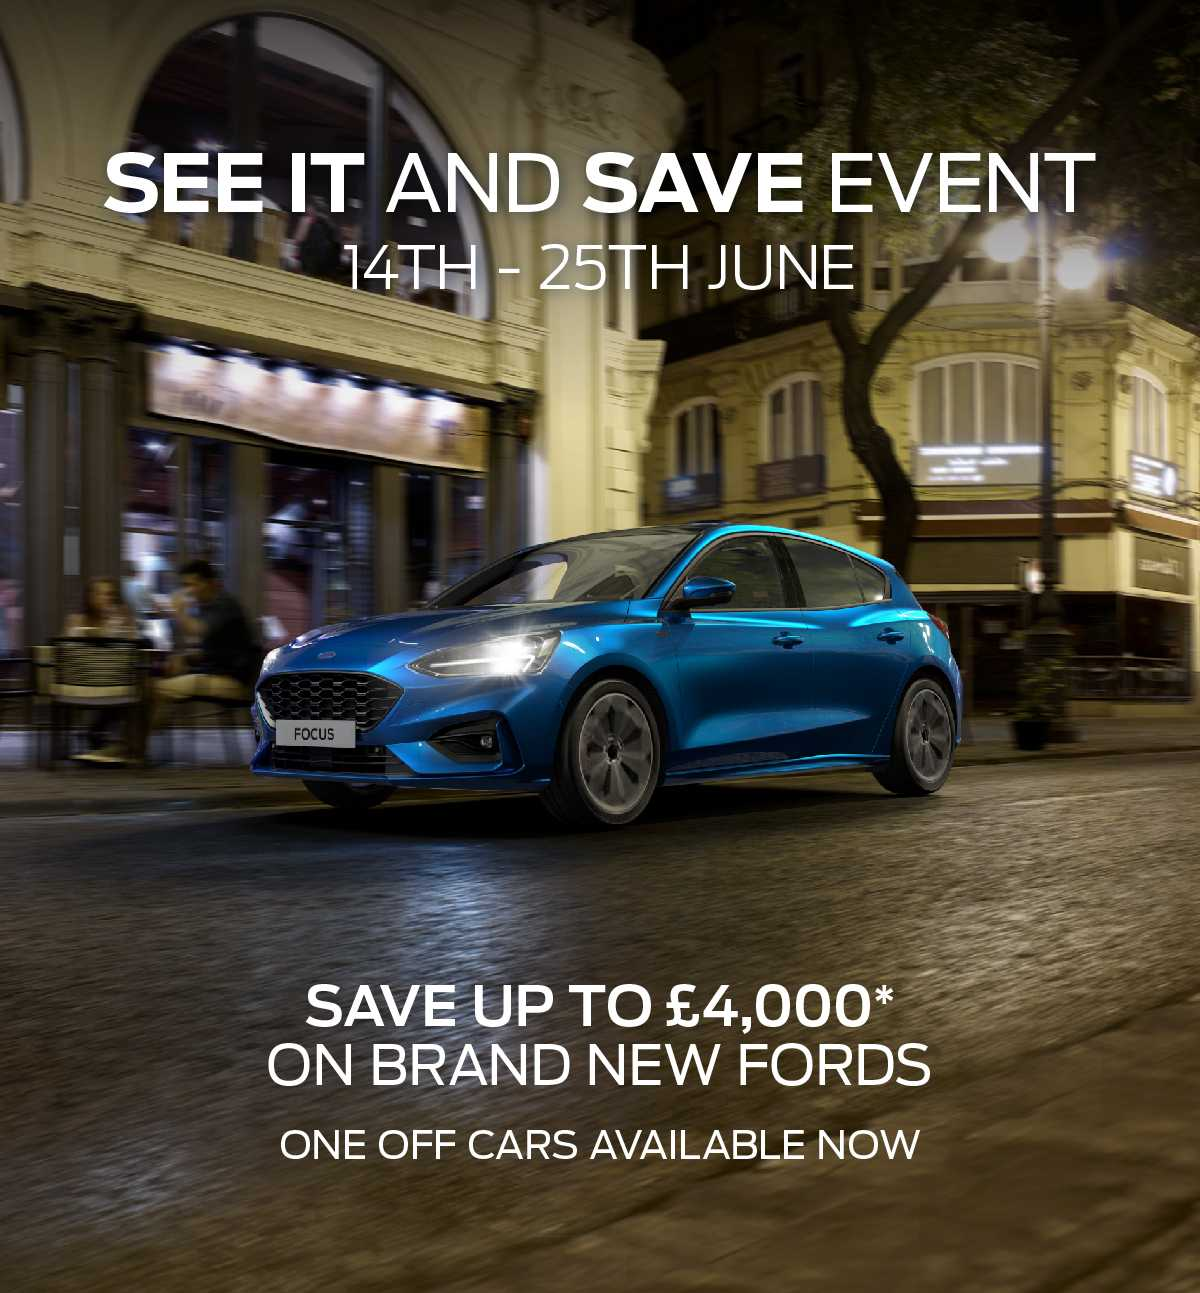 Ford SEE IT and SAVE Event